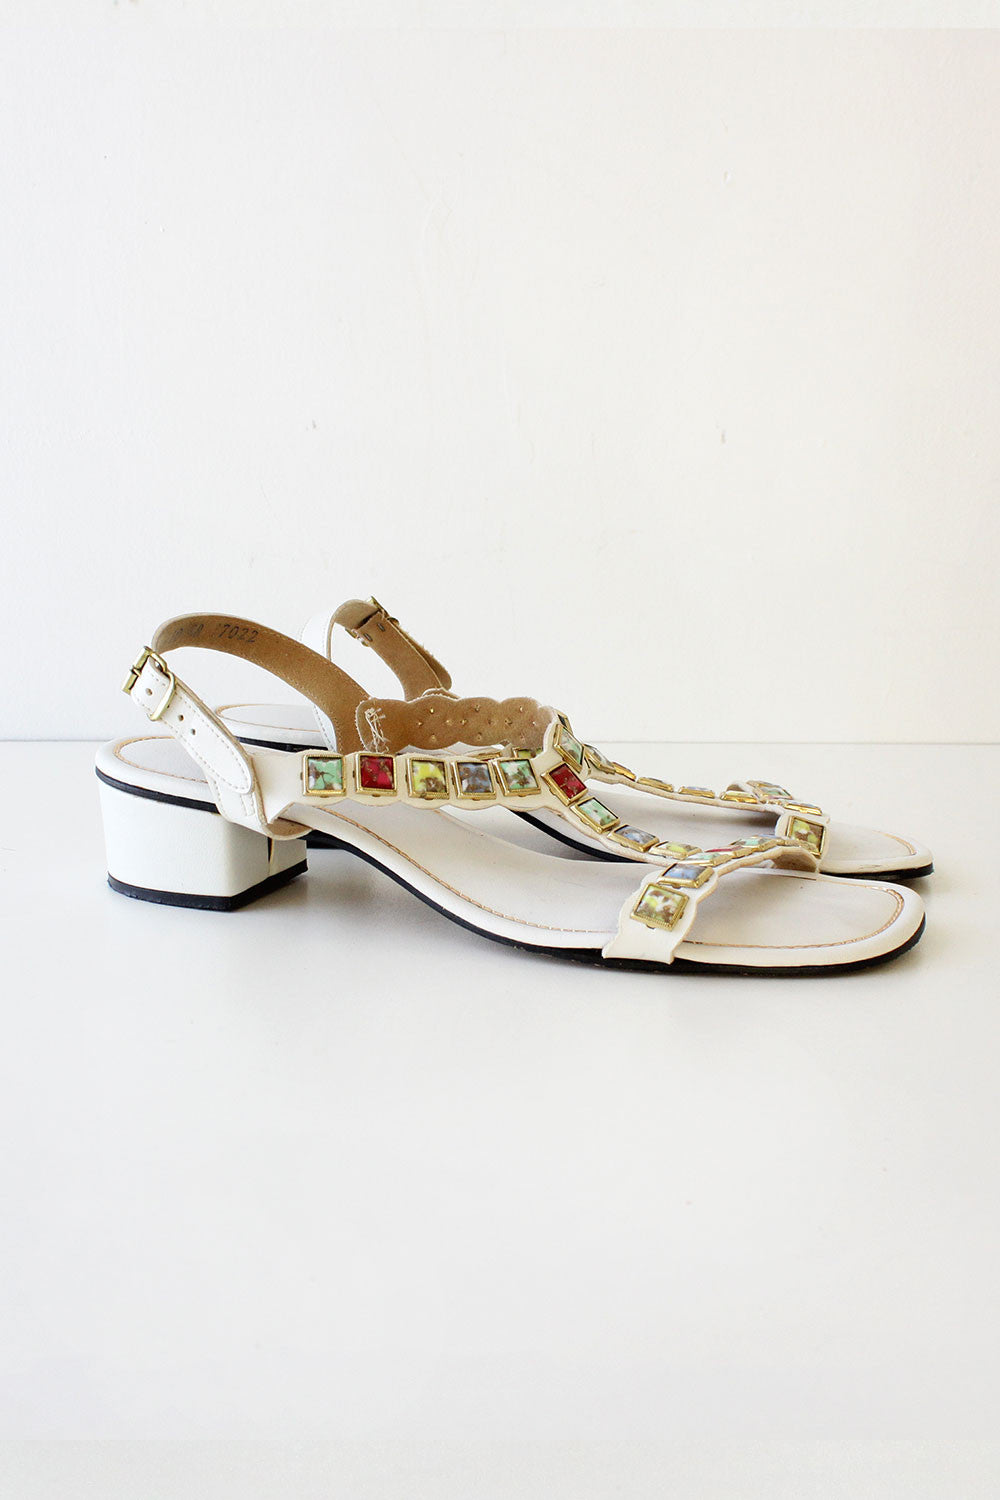 Beacon Bejeweled Sandals 9 1/2